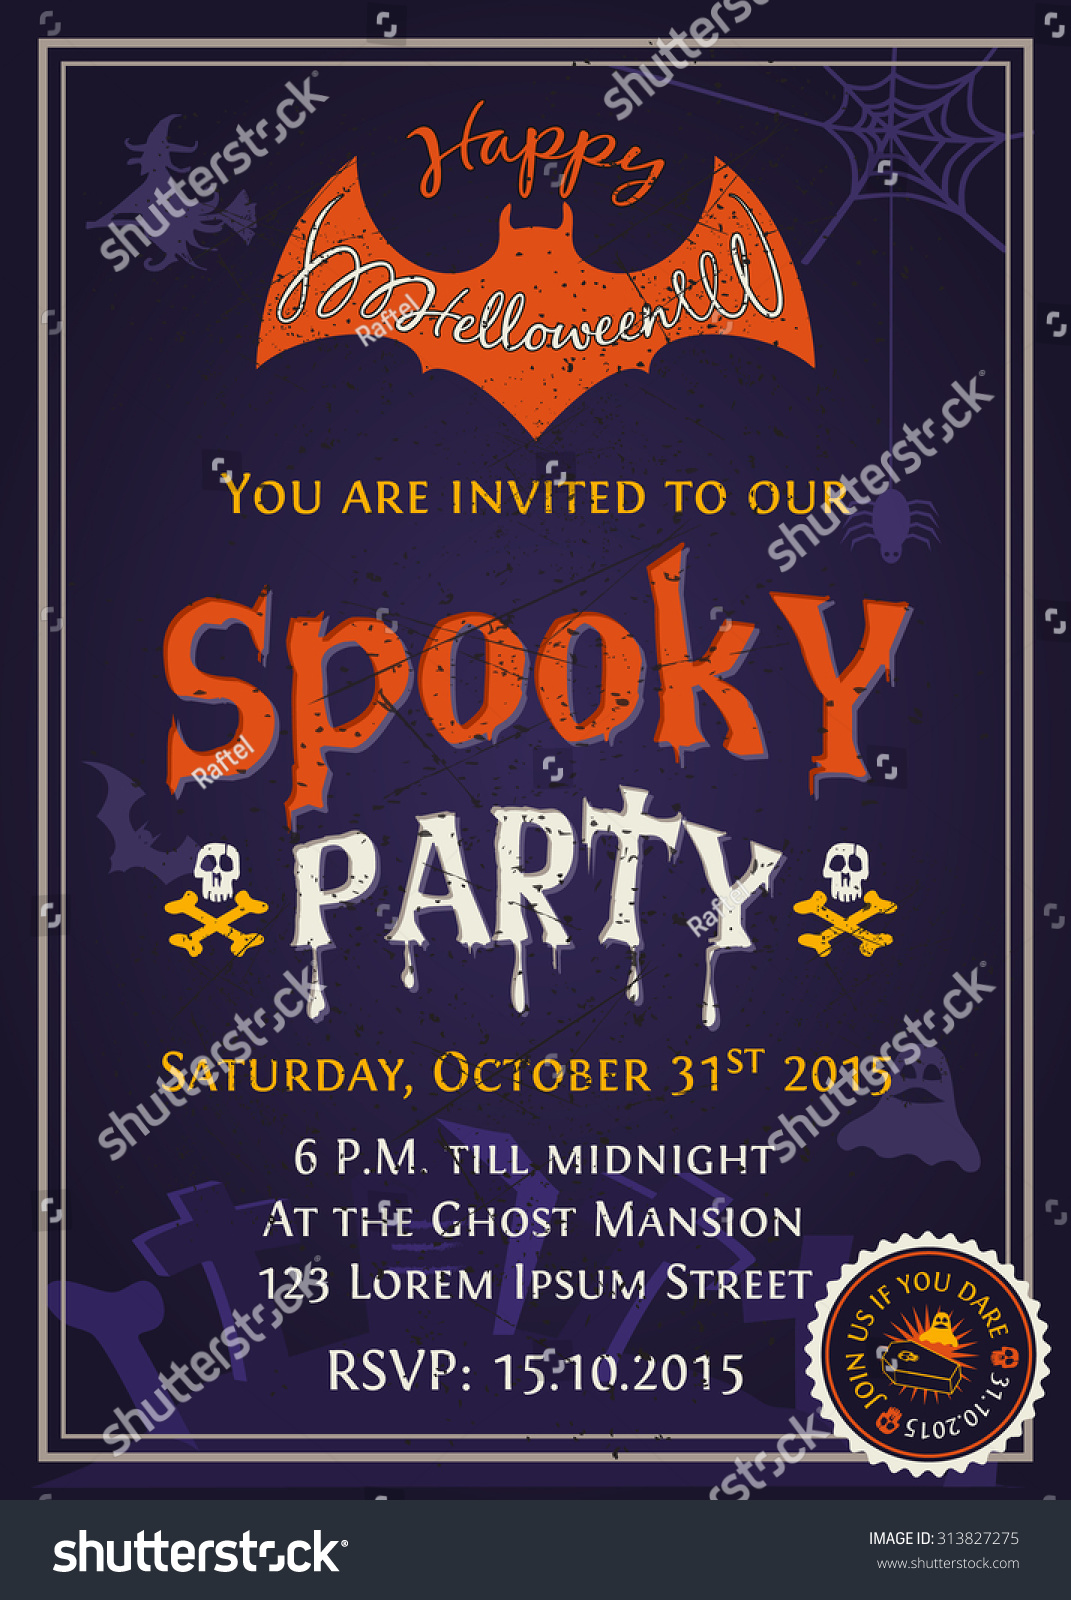 Spooky Halloween Party Invitation Card Design With Scary Typography On Purple Tone Background Vector Illustration